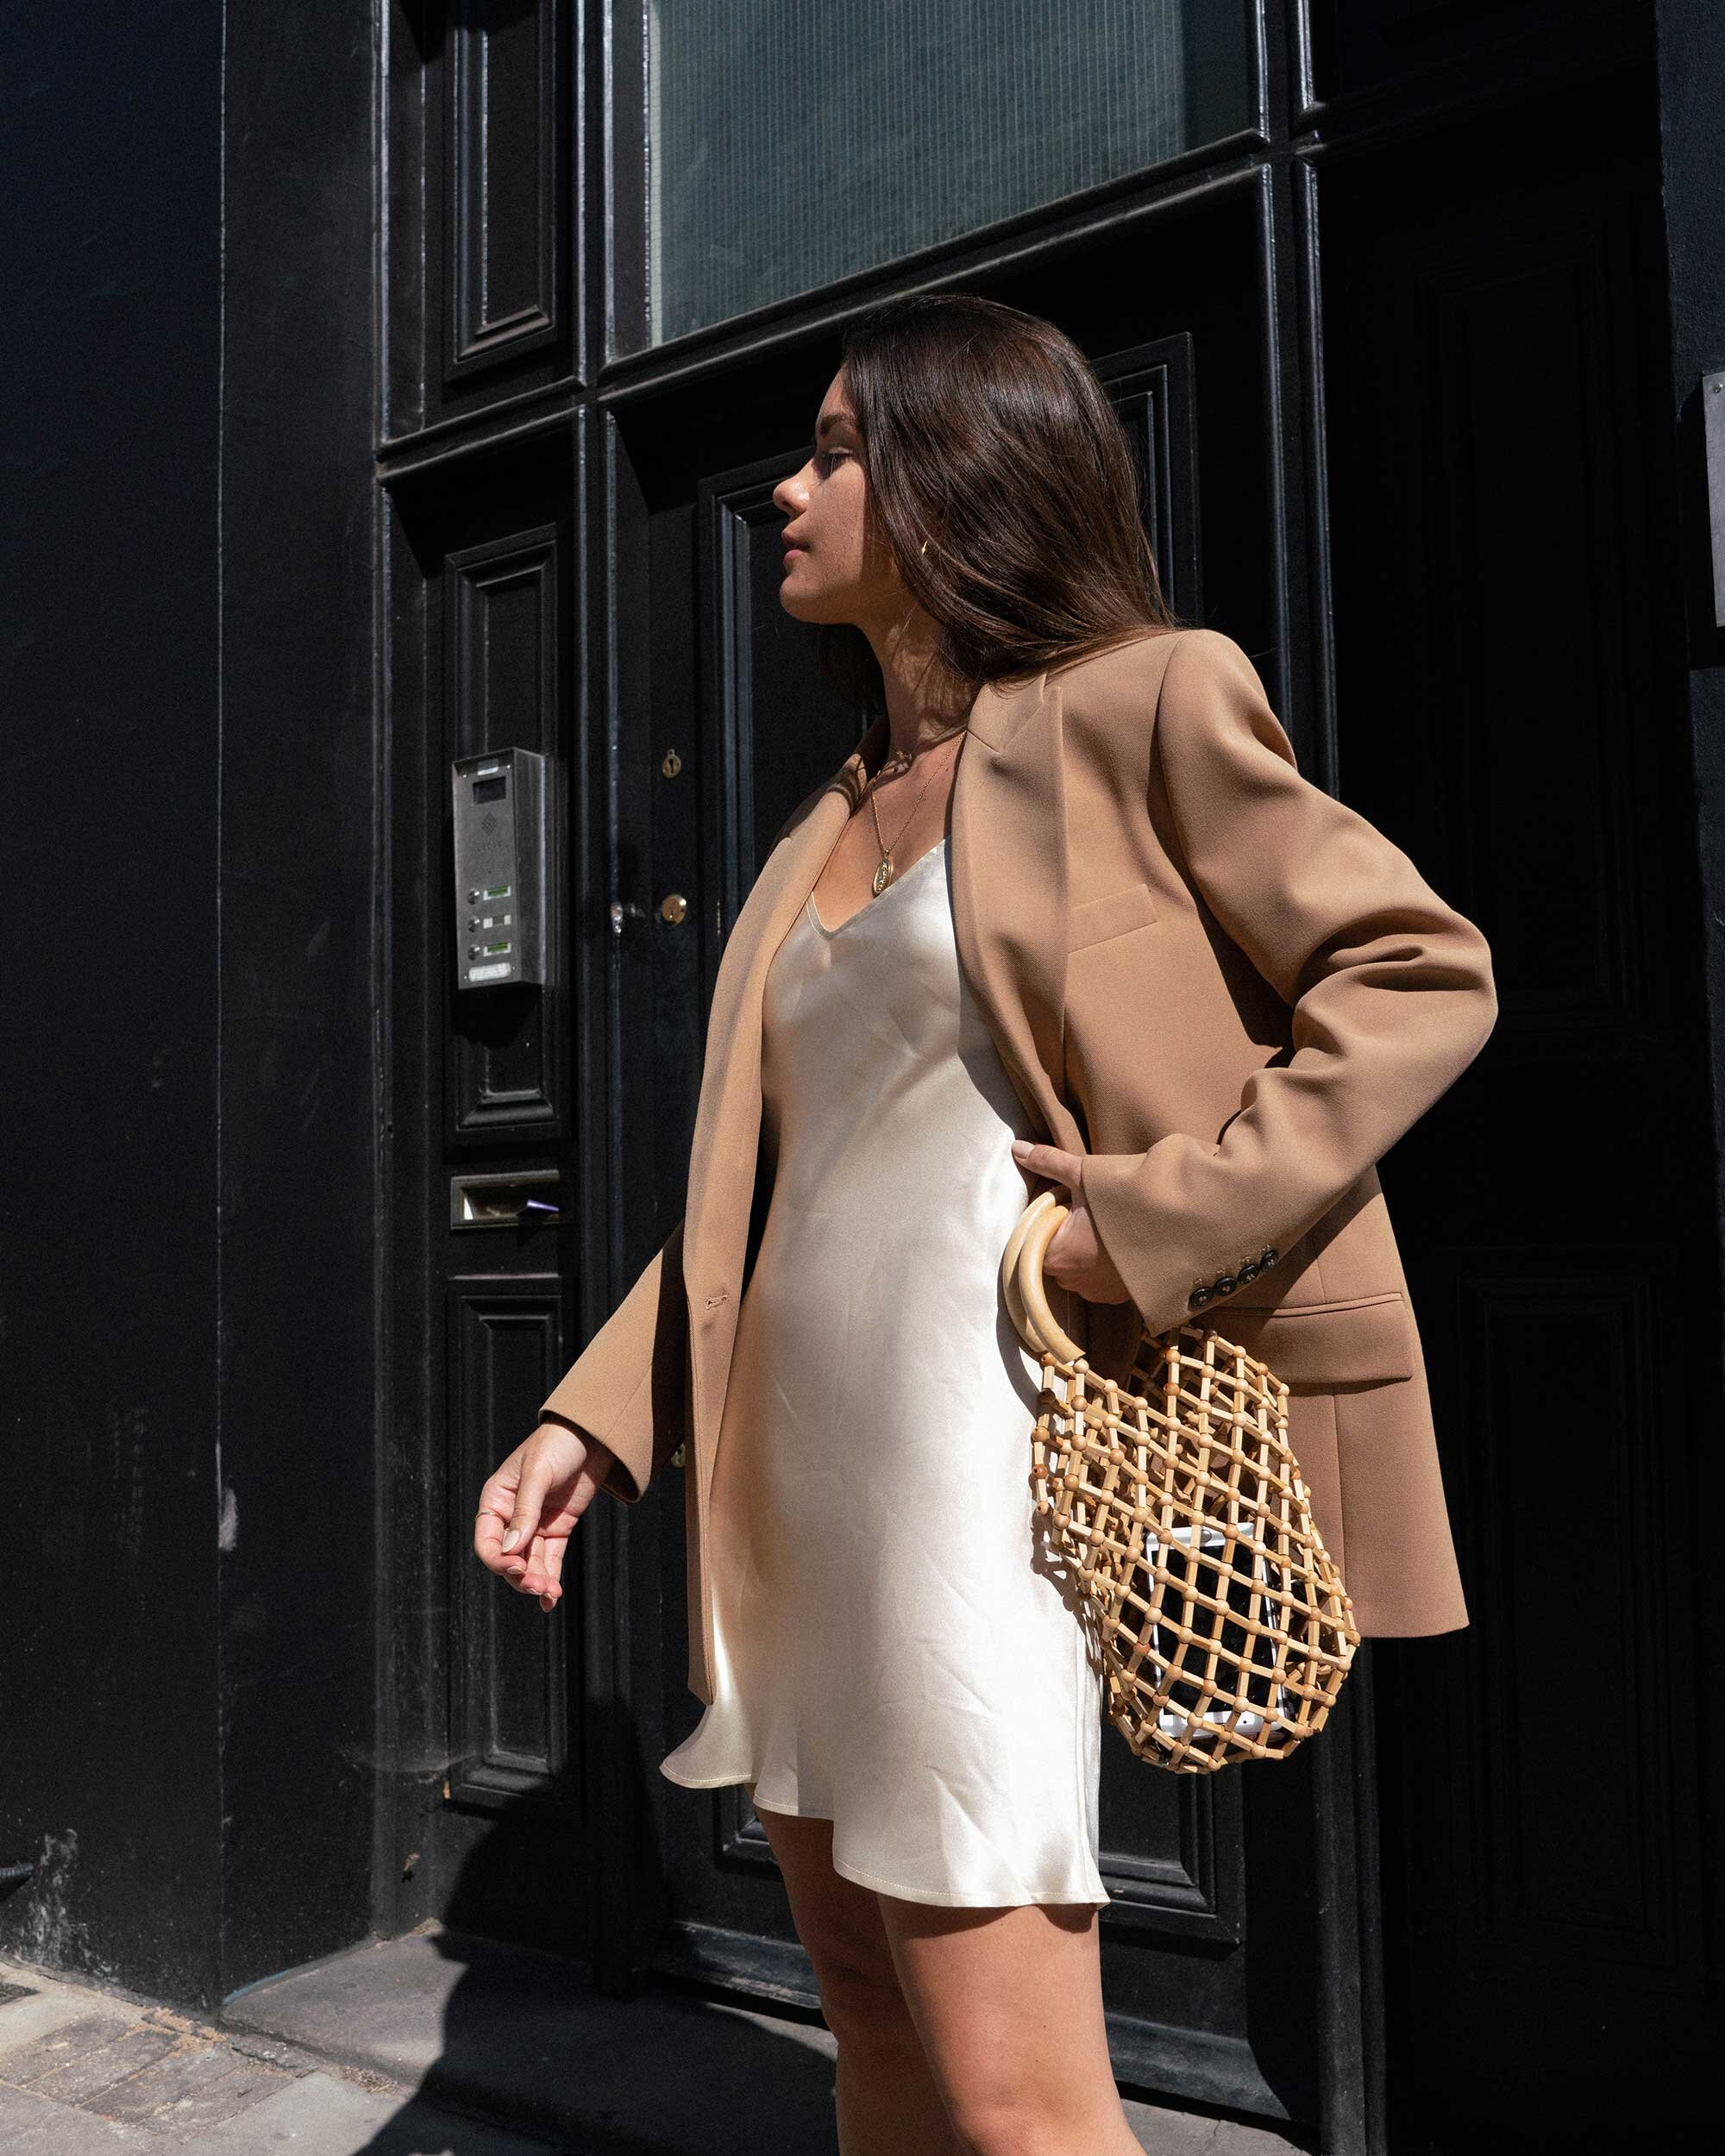 Sarah Butler of Sarah Styles Seattle wears ivory Slip dress and tan blazer in London | @sarahchristine -8.jpg